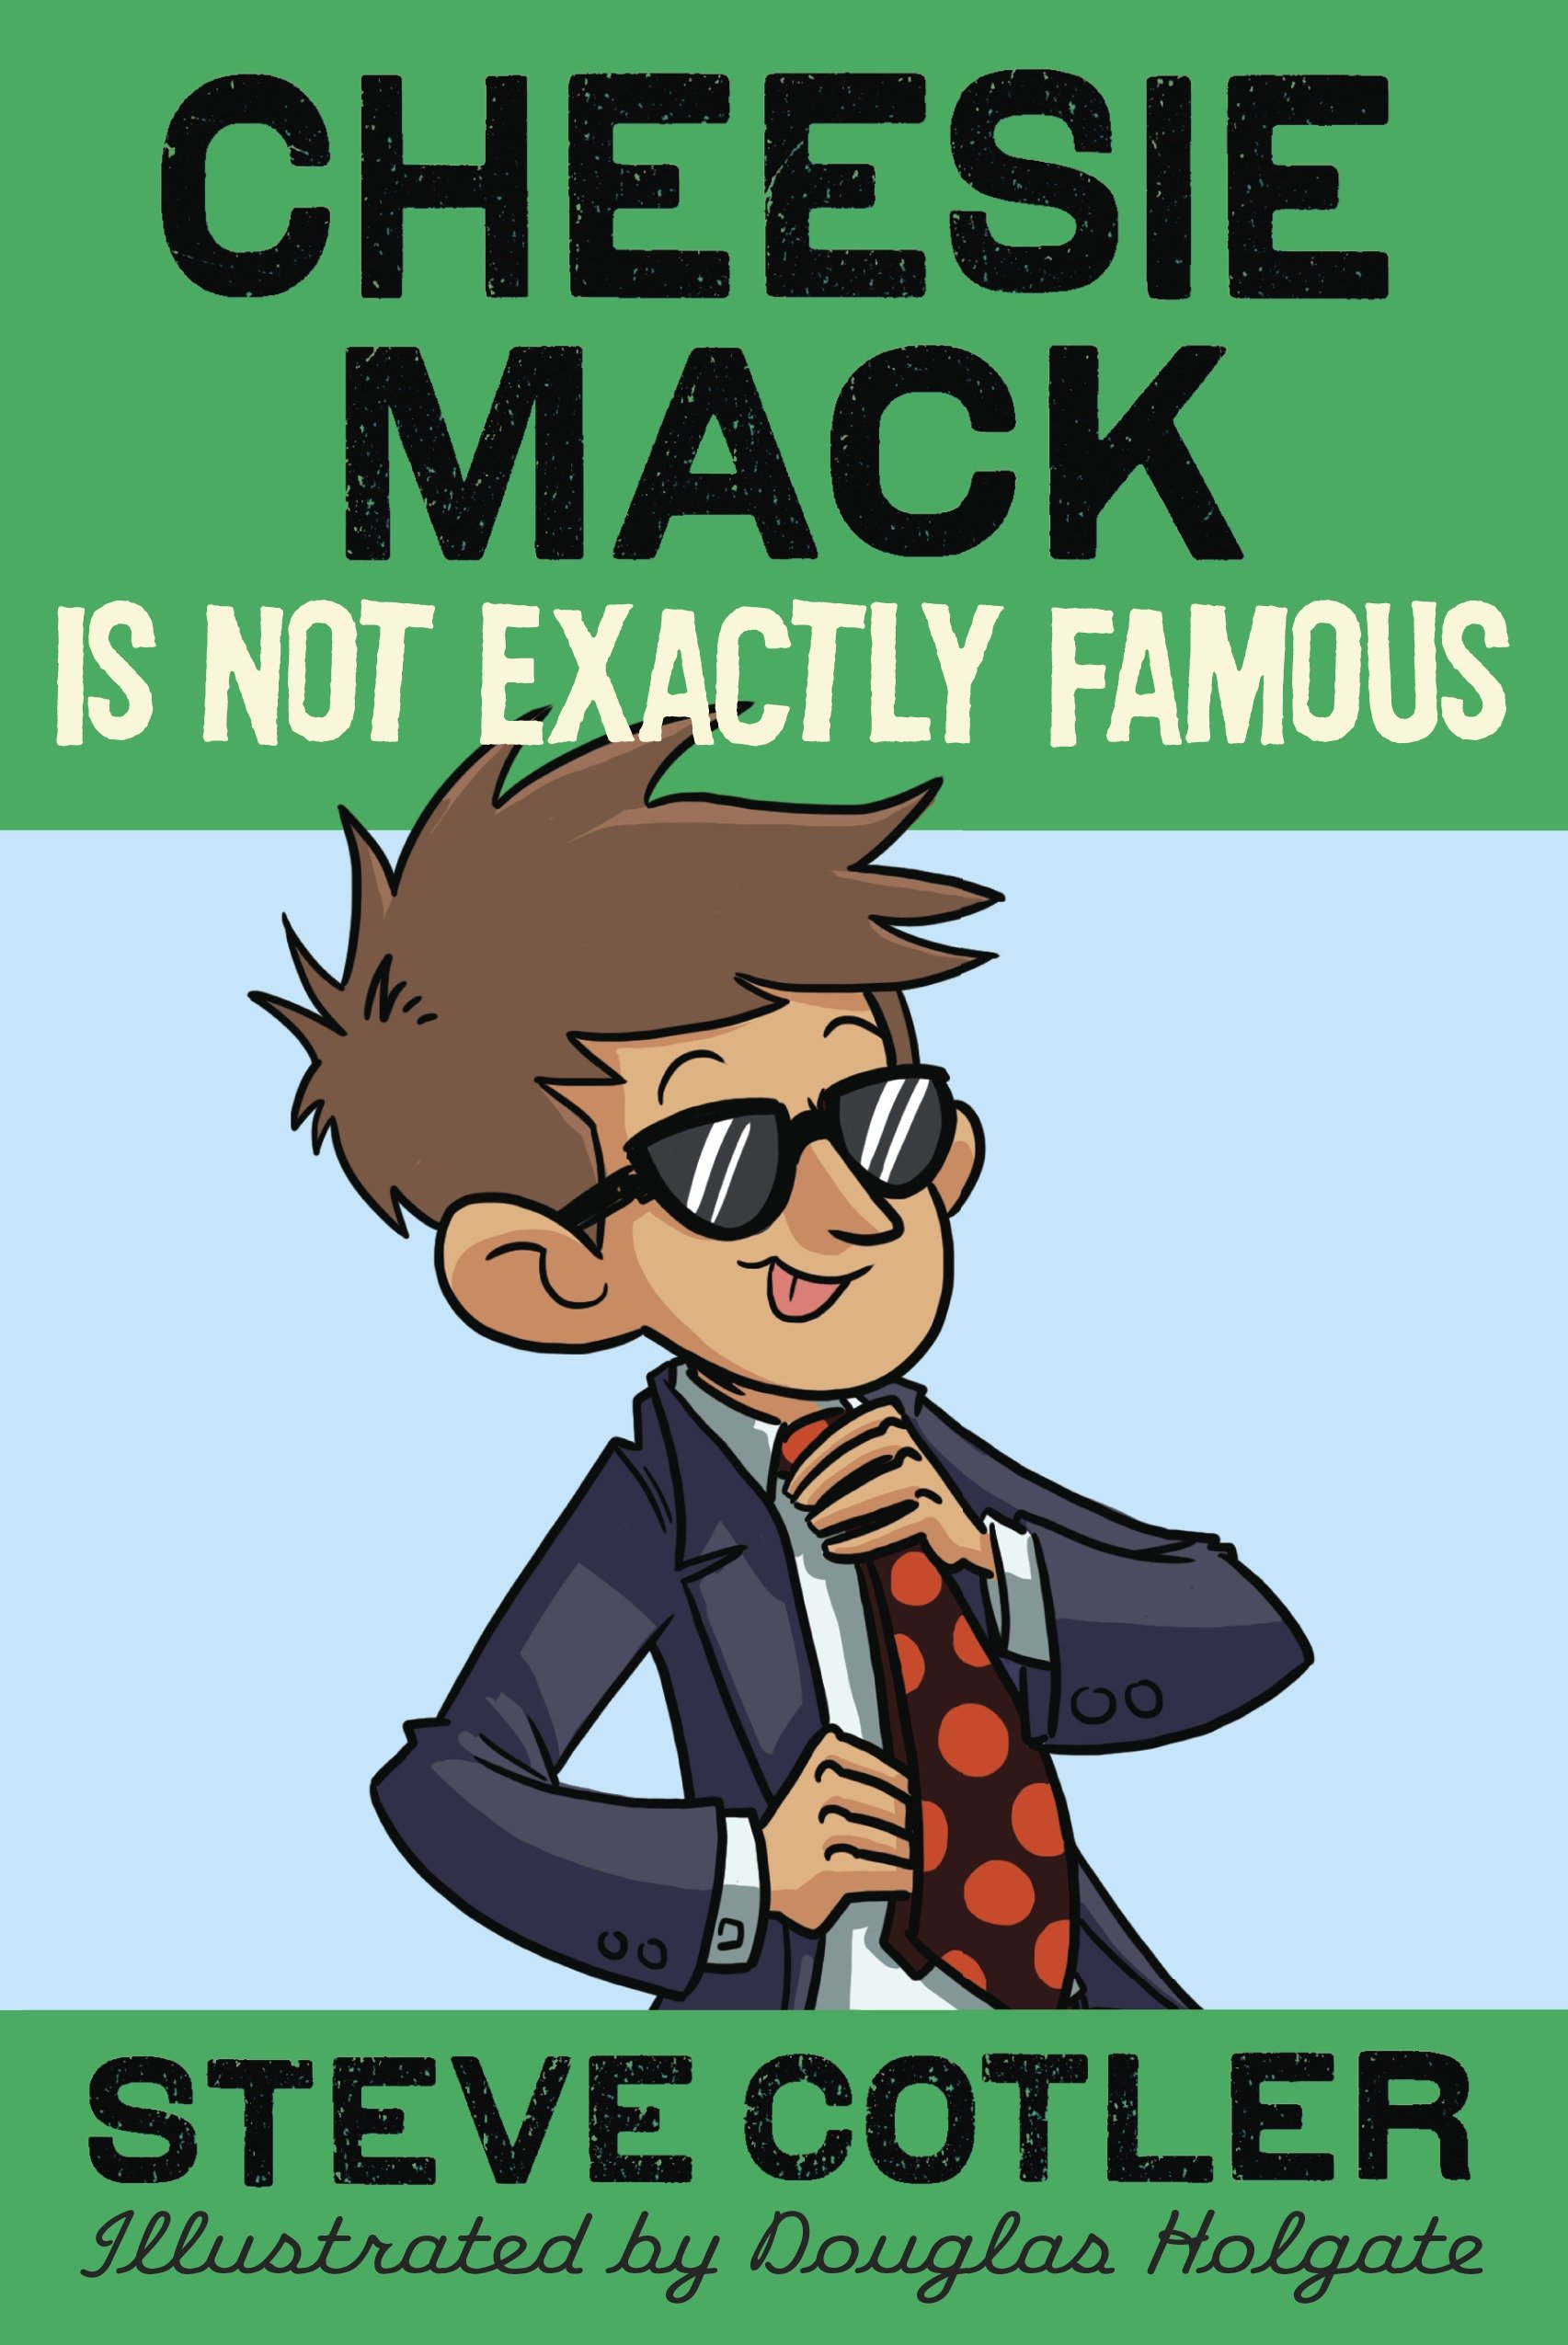 Cheesie Mack is not exactly famous cover image